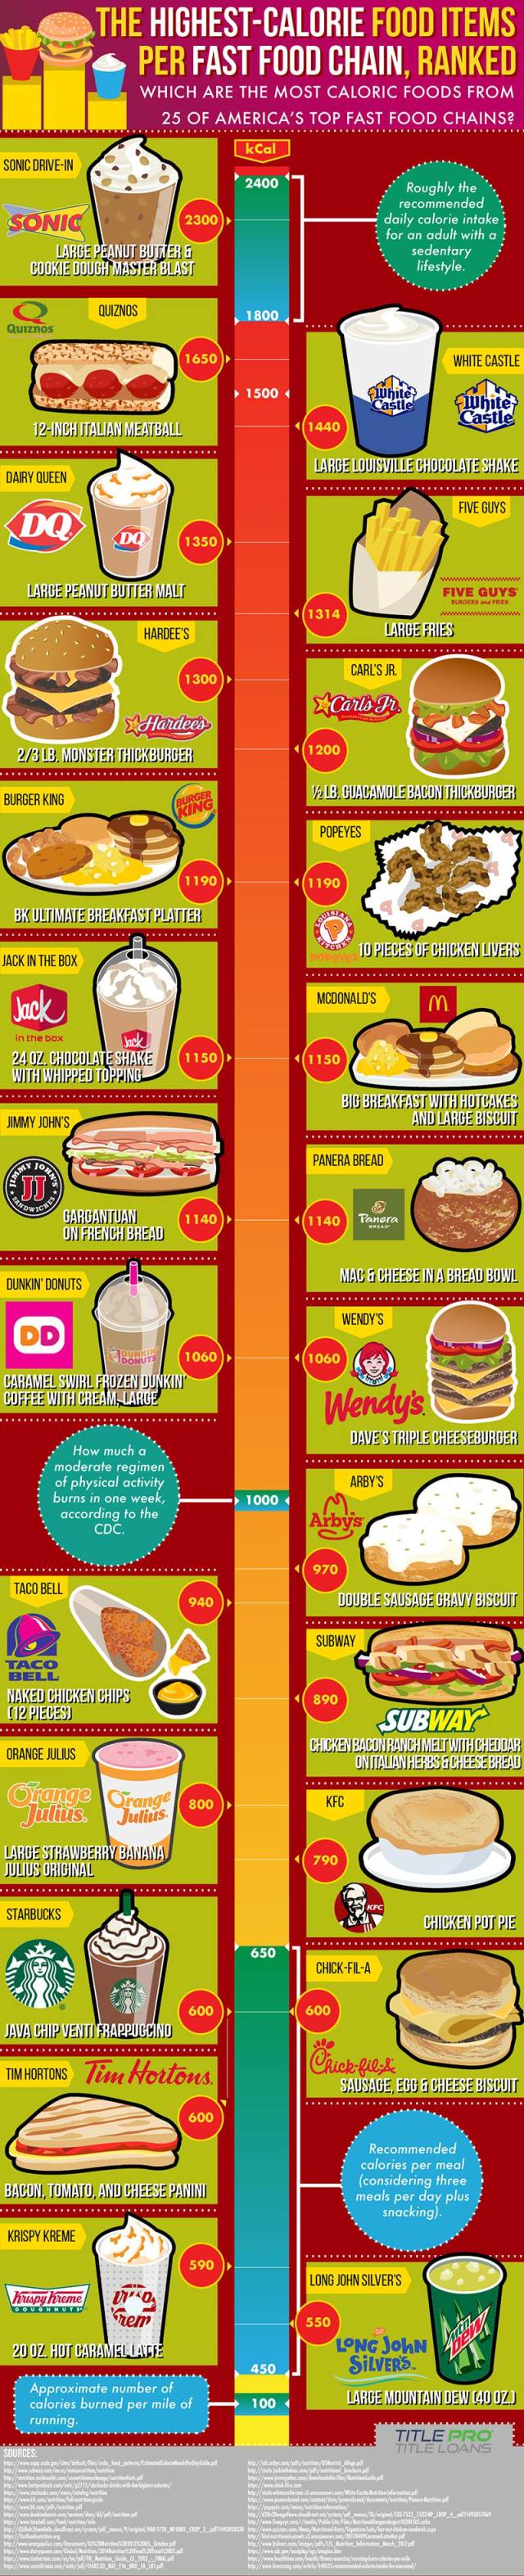 The Highest Calorie Fast Food Items Ranked